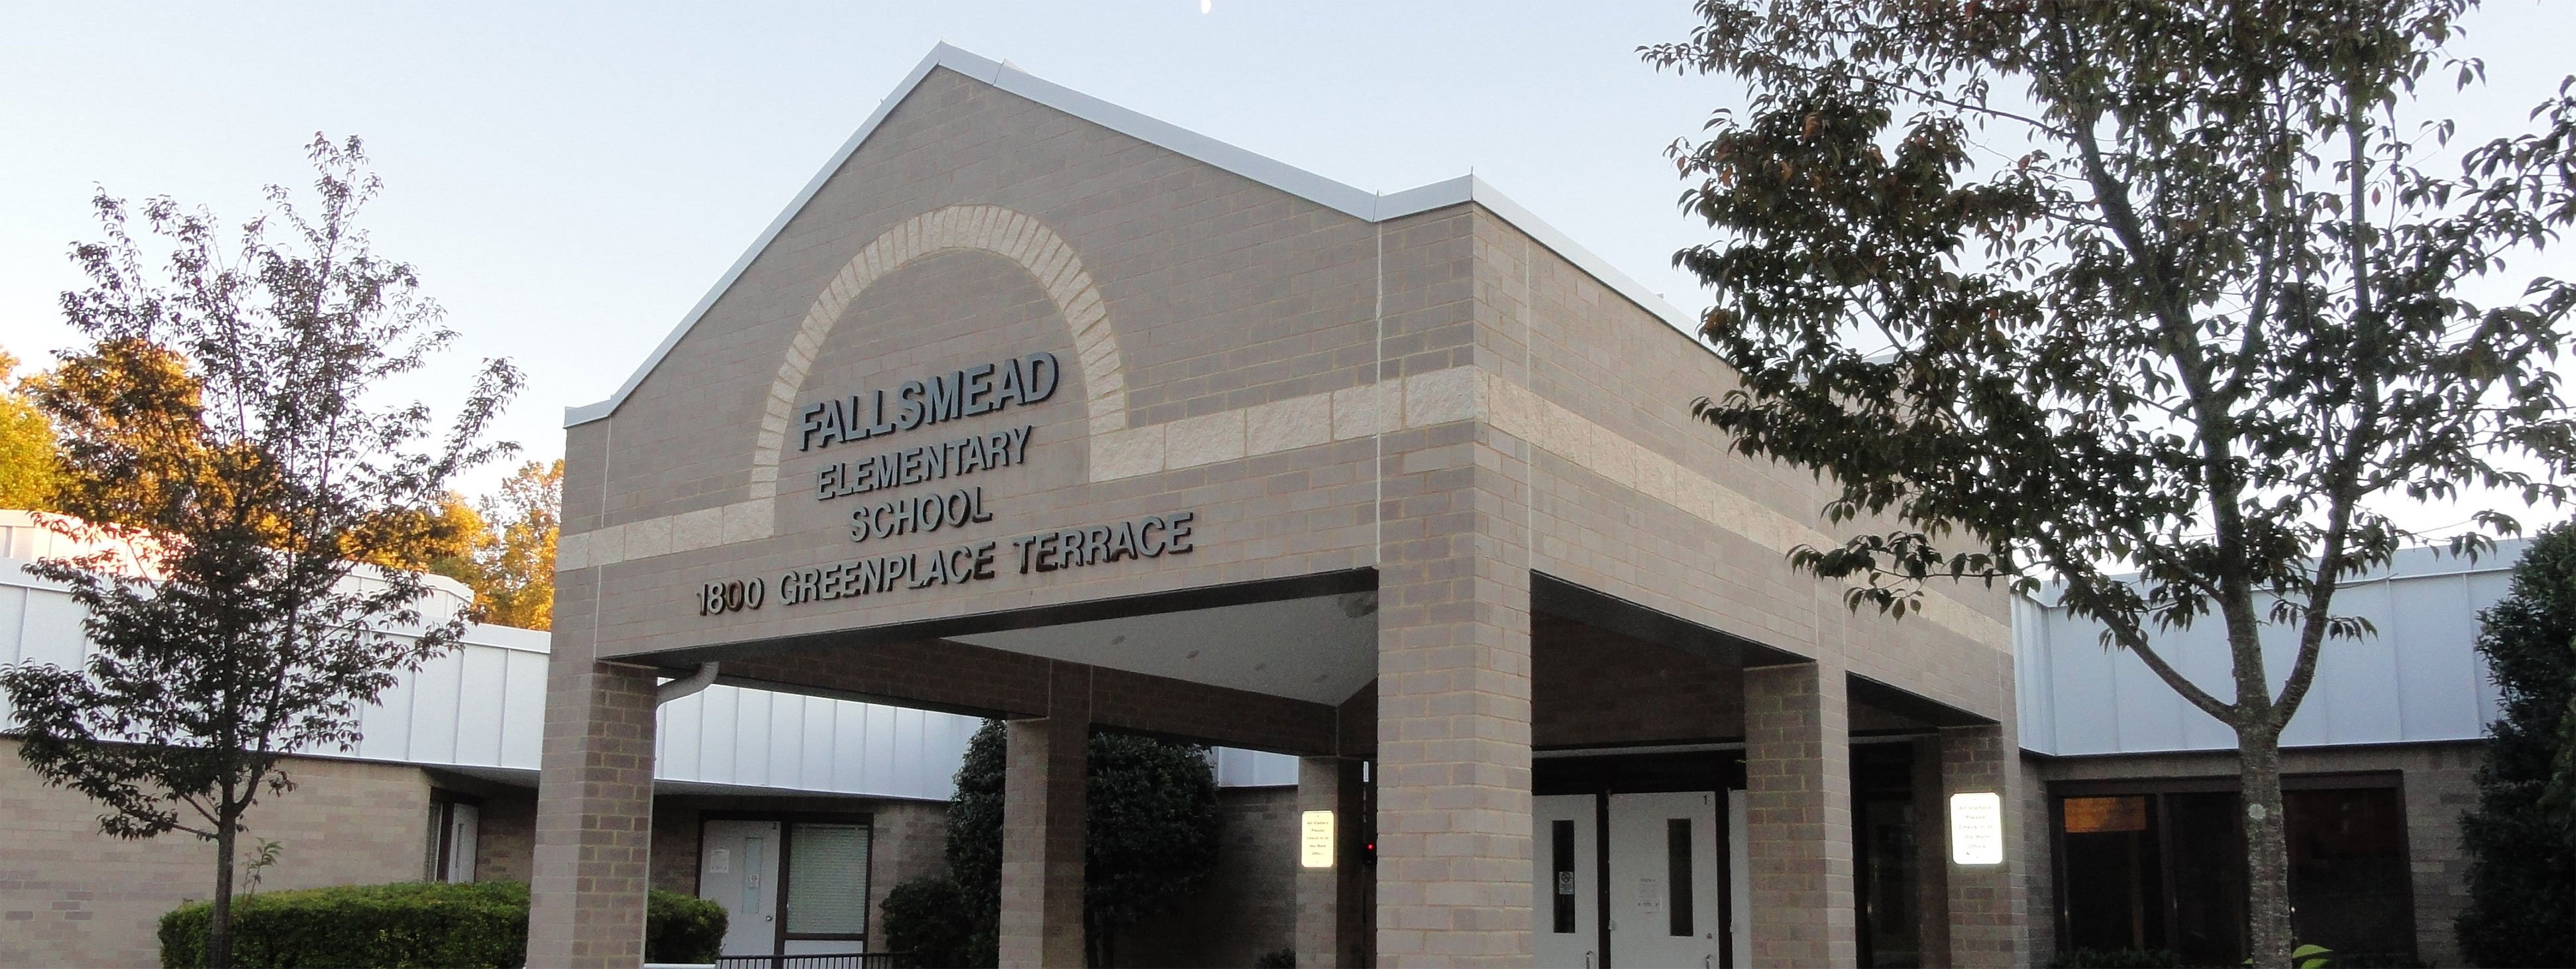 The Best Public Elementary Schools in Maryland 2020 List